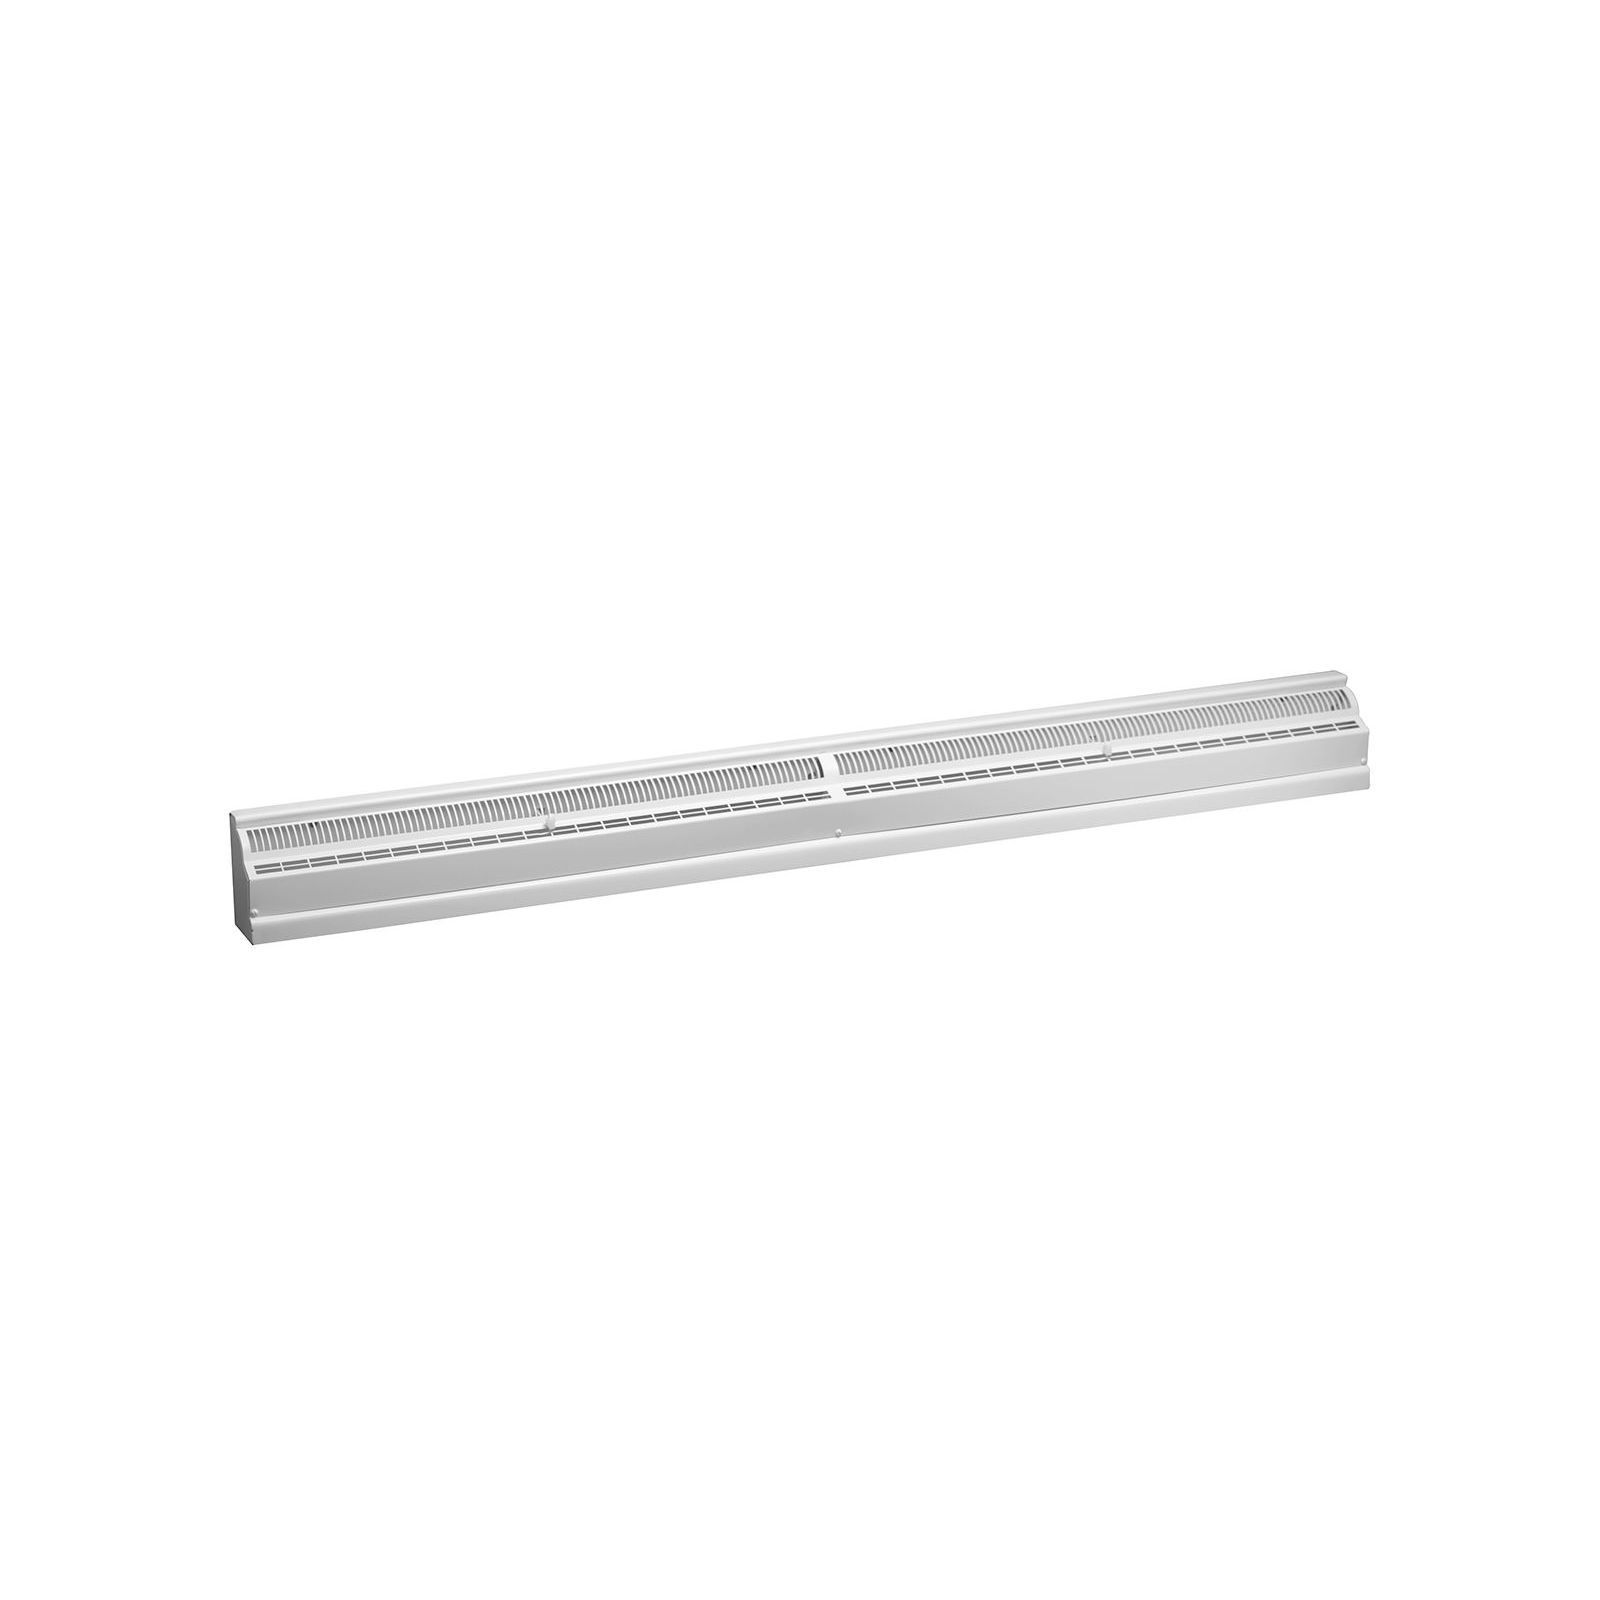 Hart & Cooley 010728 - #464 Steel Baseboard Register, 4'